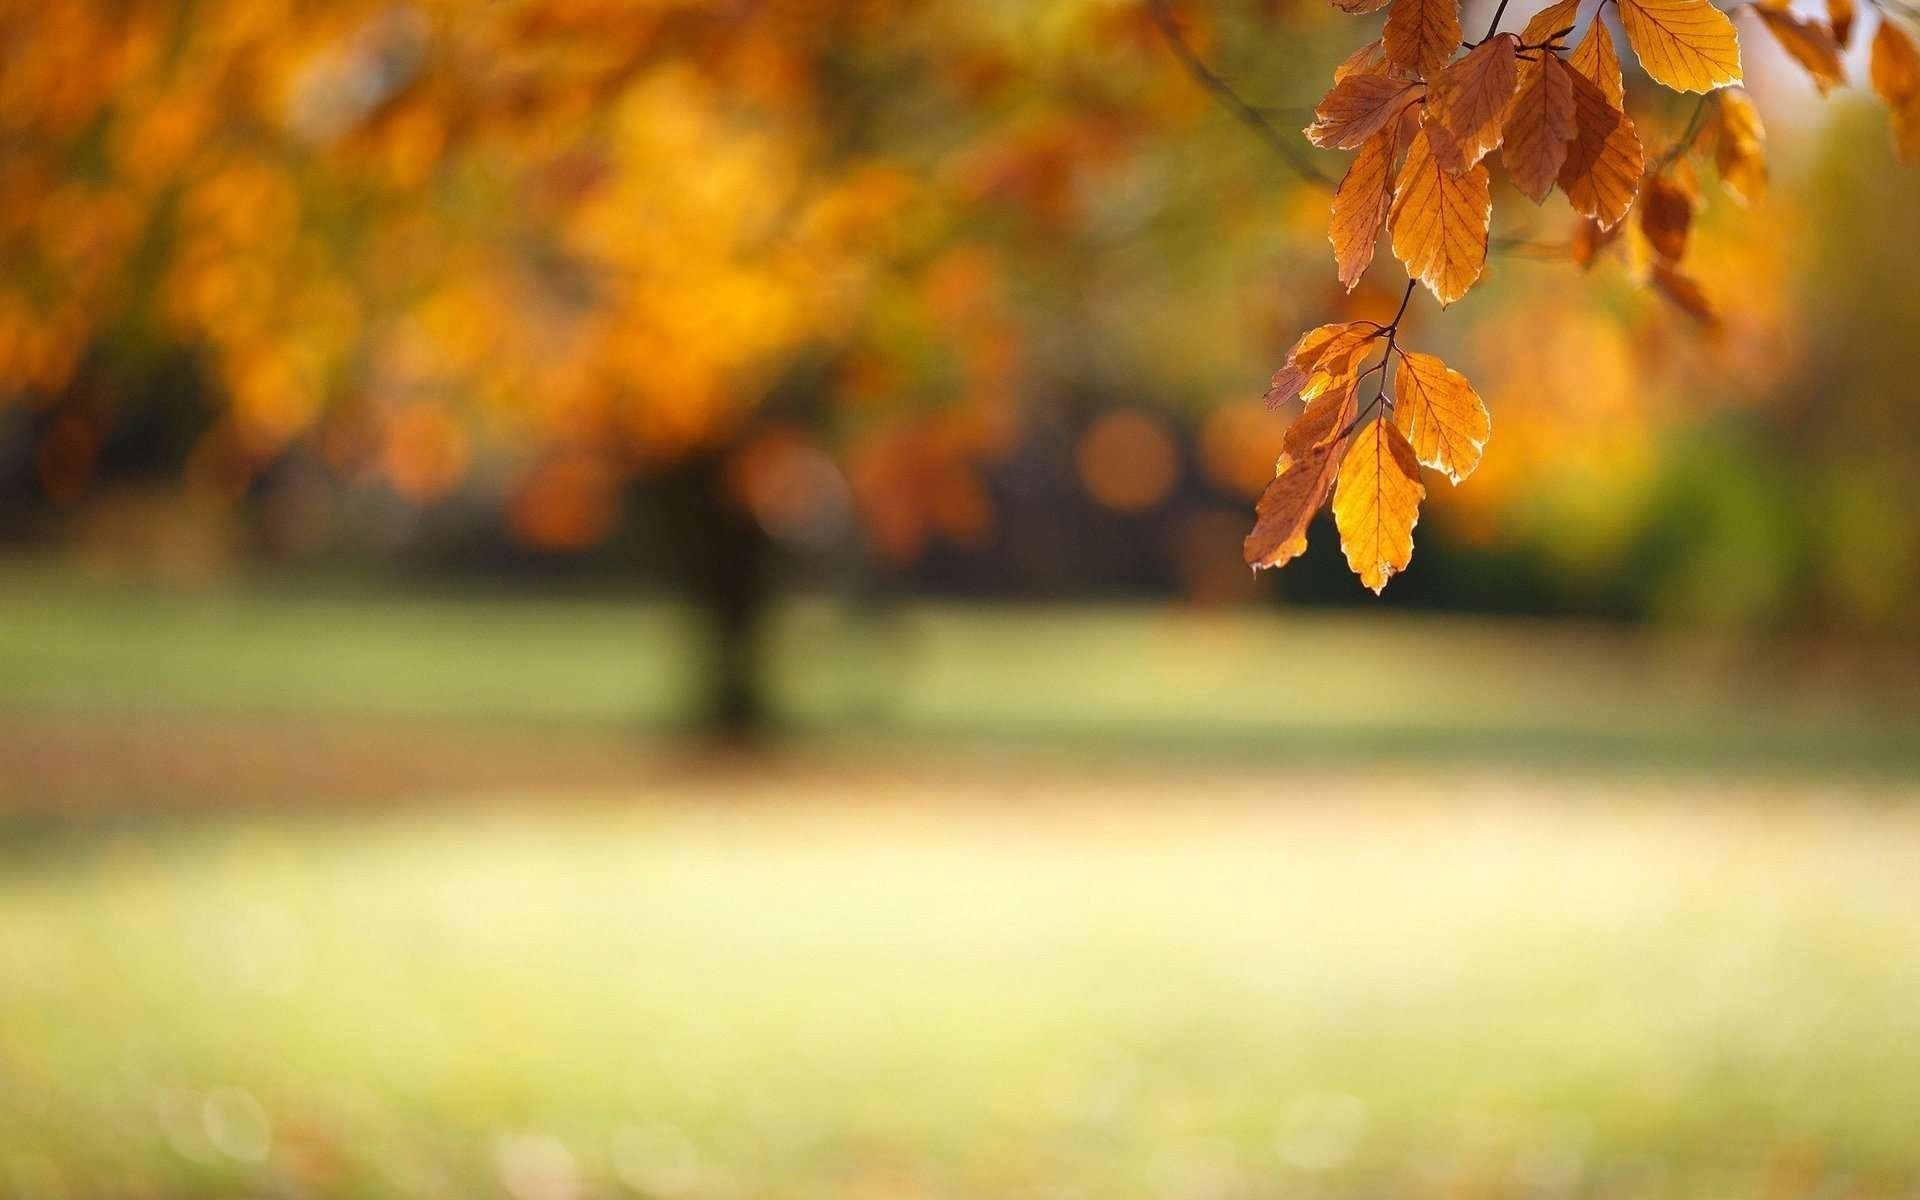 Autumn Leaves Screen Images Autumn Leaves Wallpaper Blurred Background Blur Photo Background